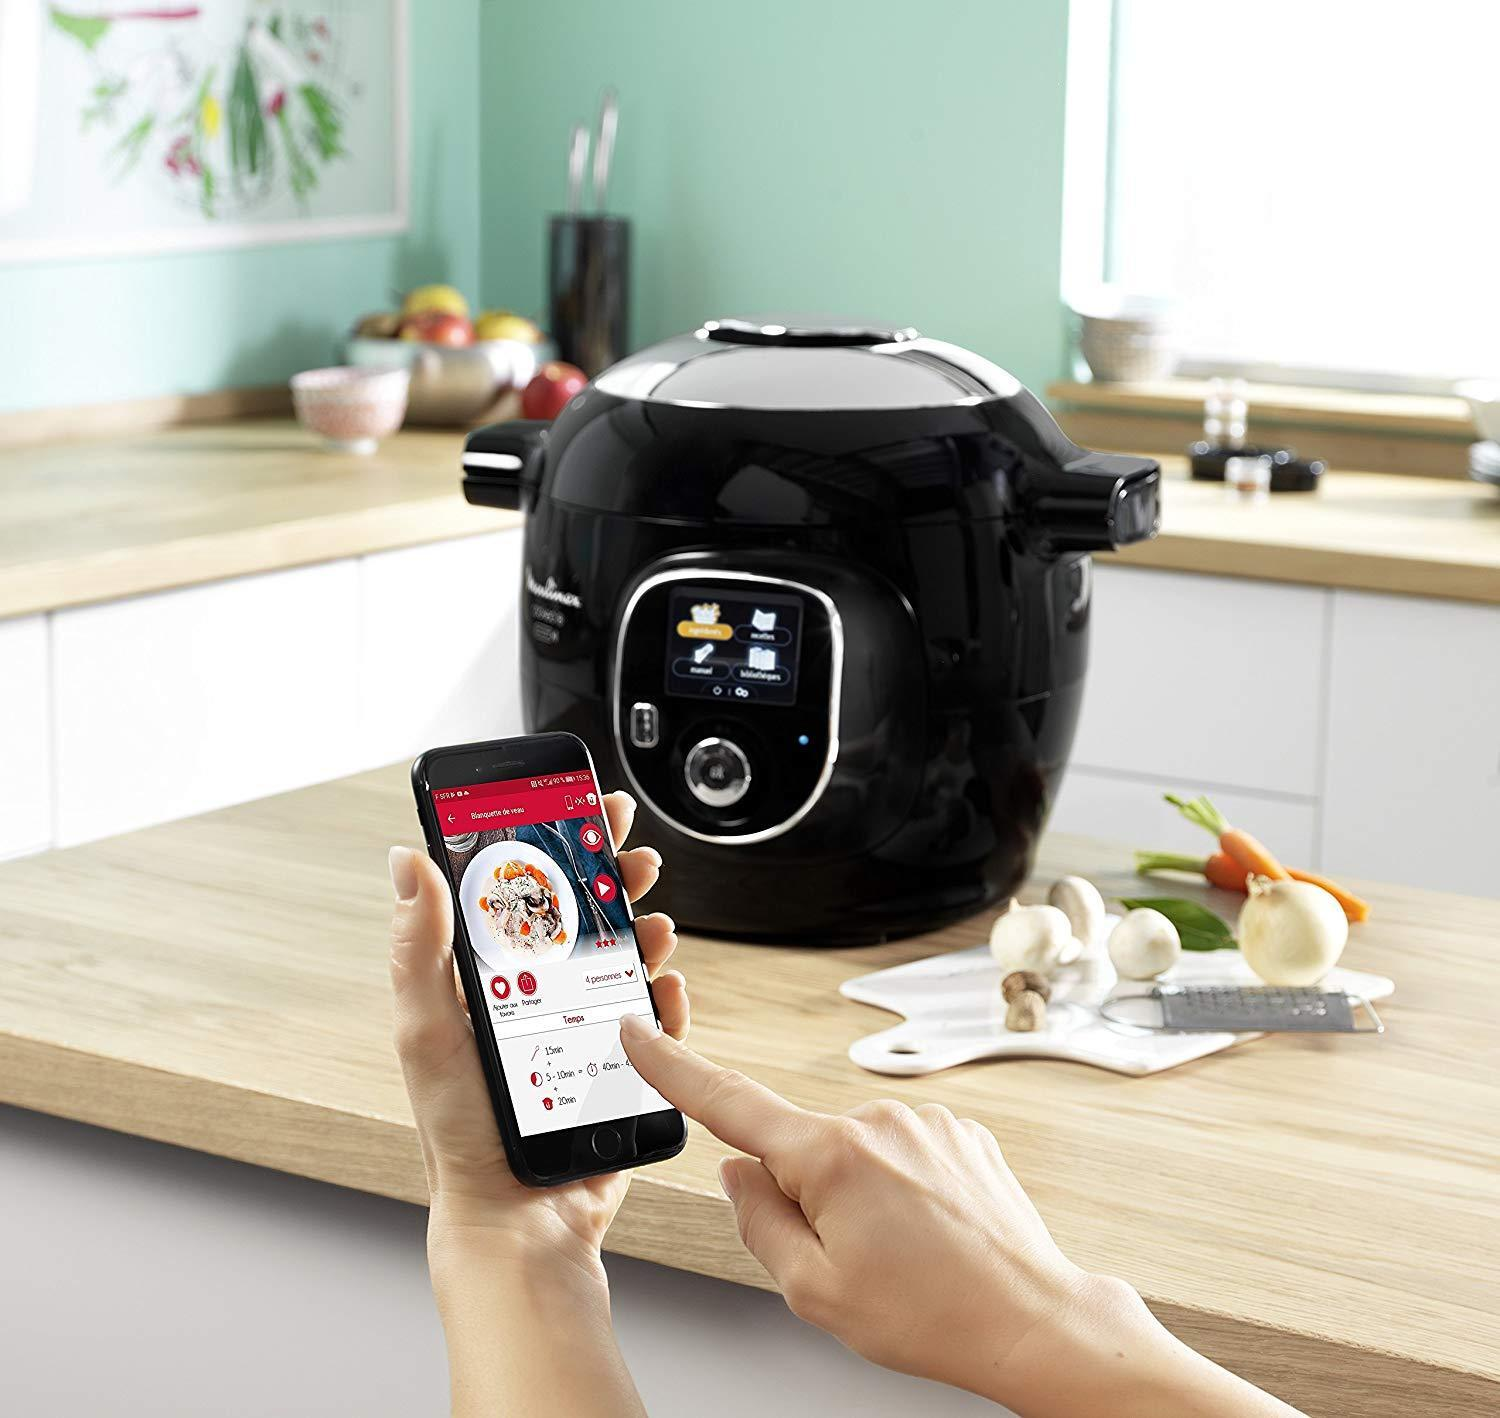 Moulinex Cookeo Connect CE855800 Robot kitchen Connects to Tablet or Smartphone